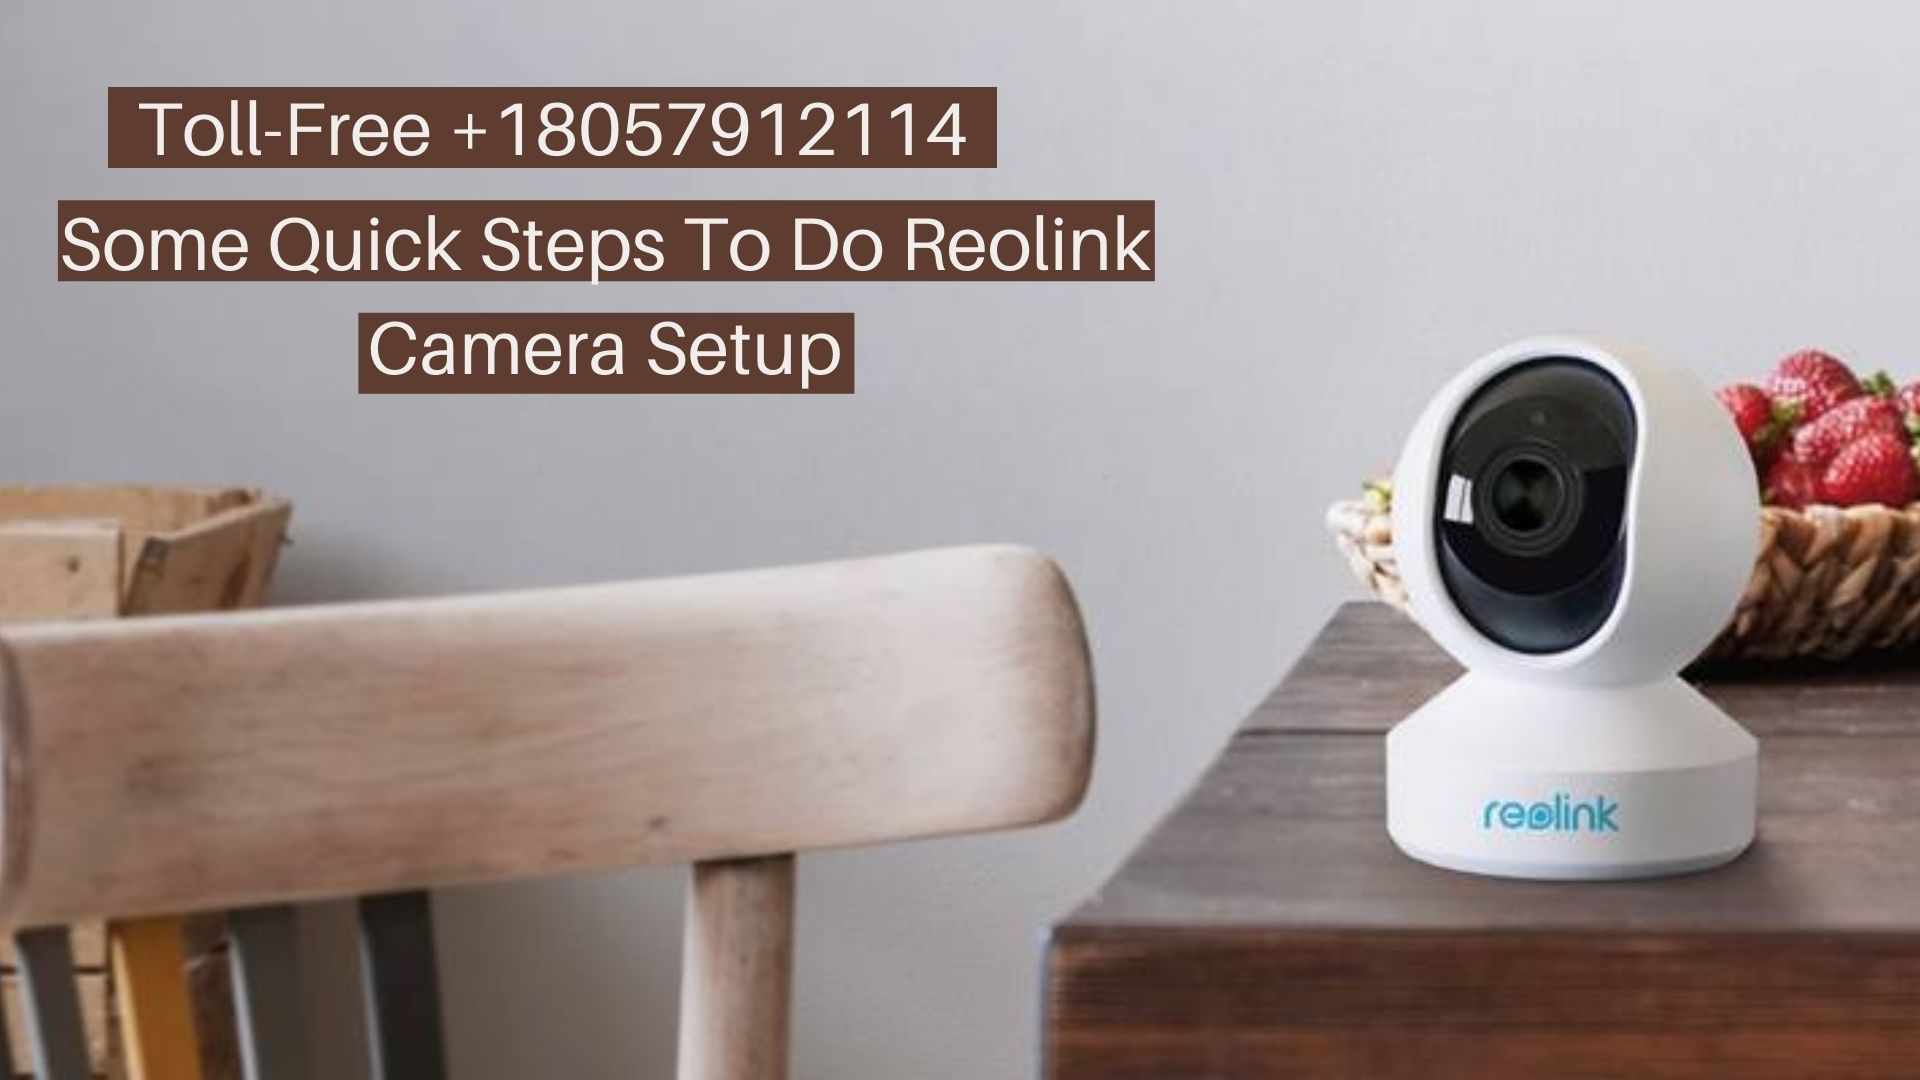 Some Quick Steps To Do Reolink Camera Setup